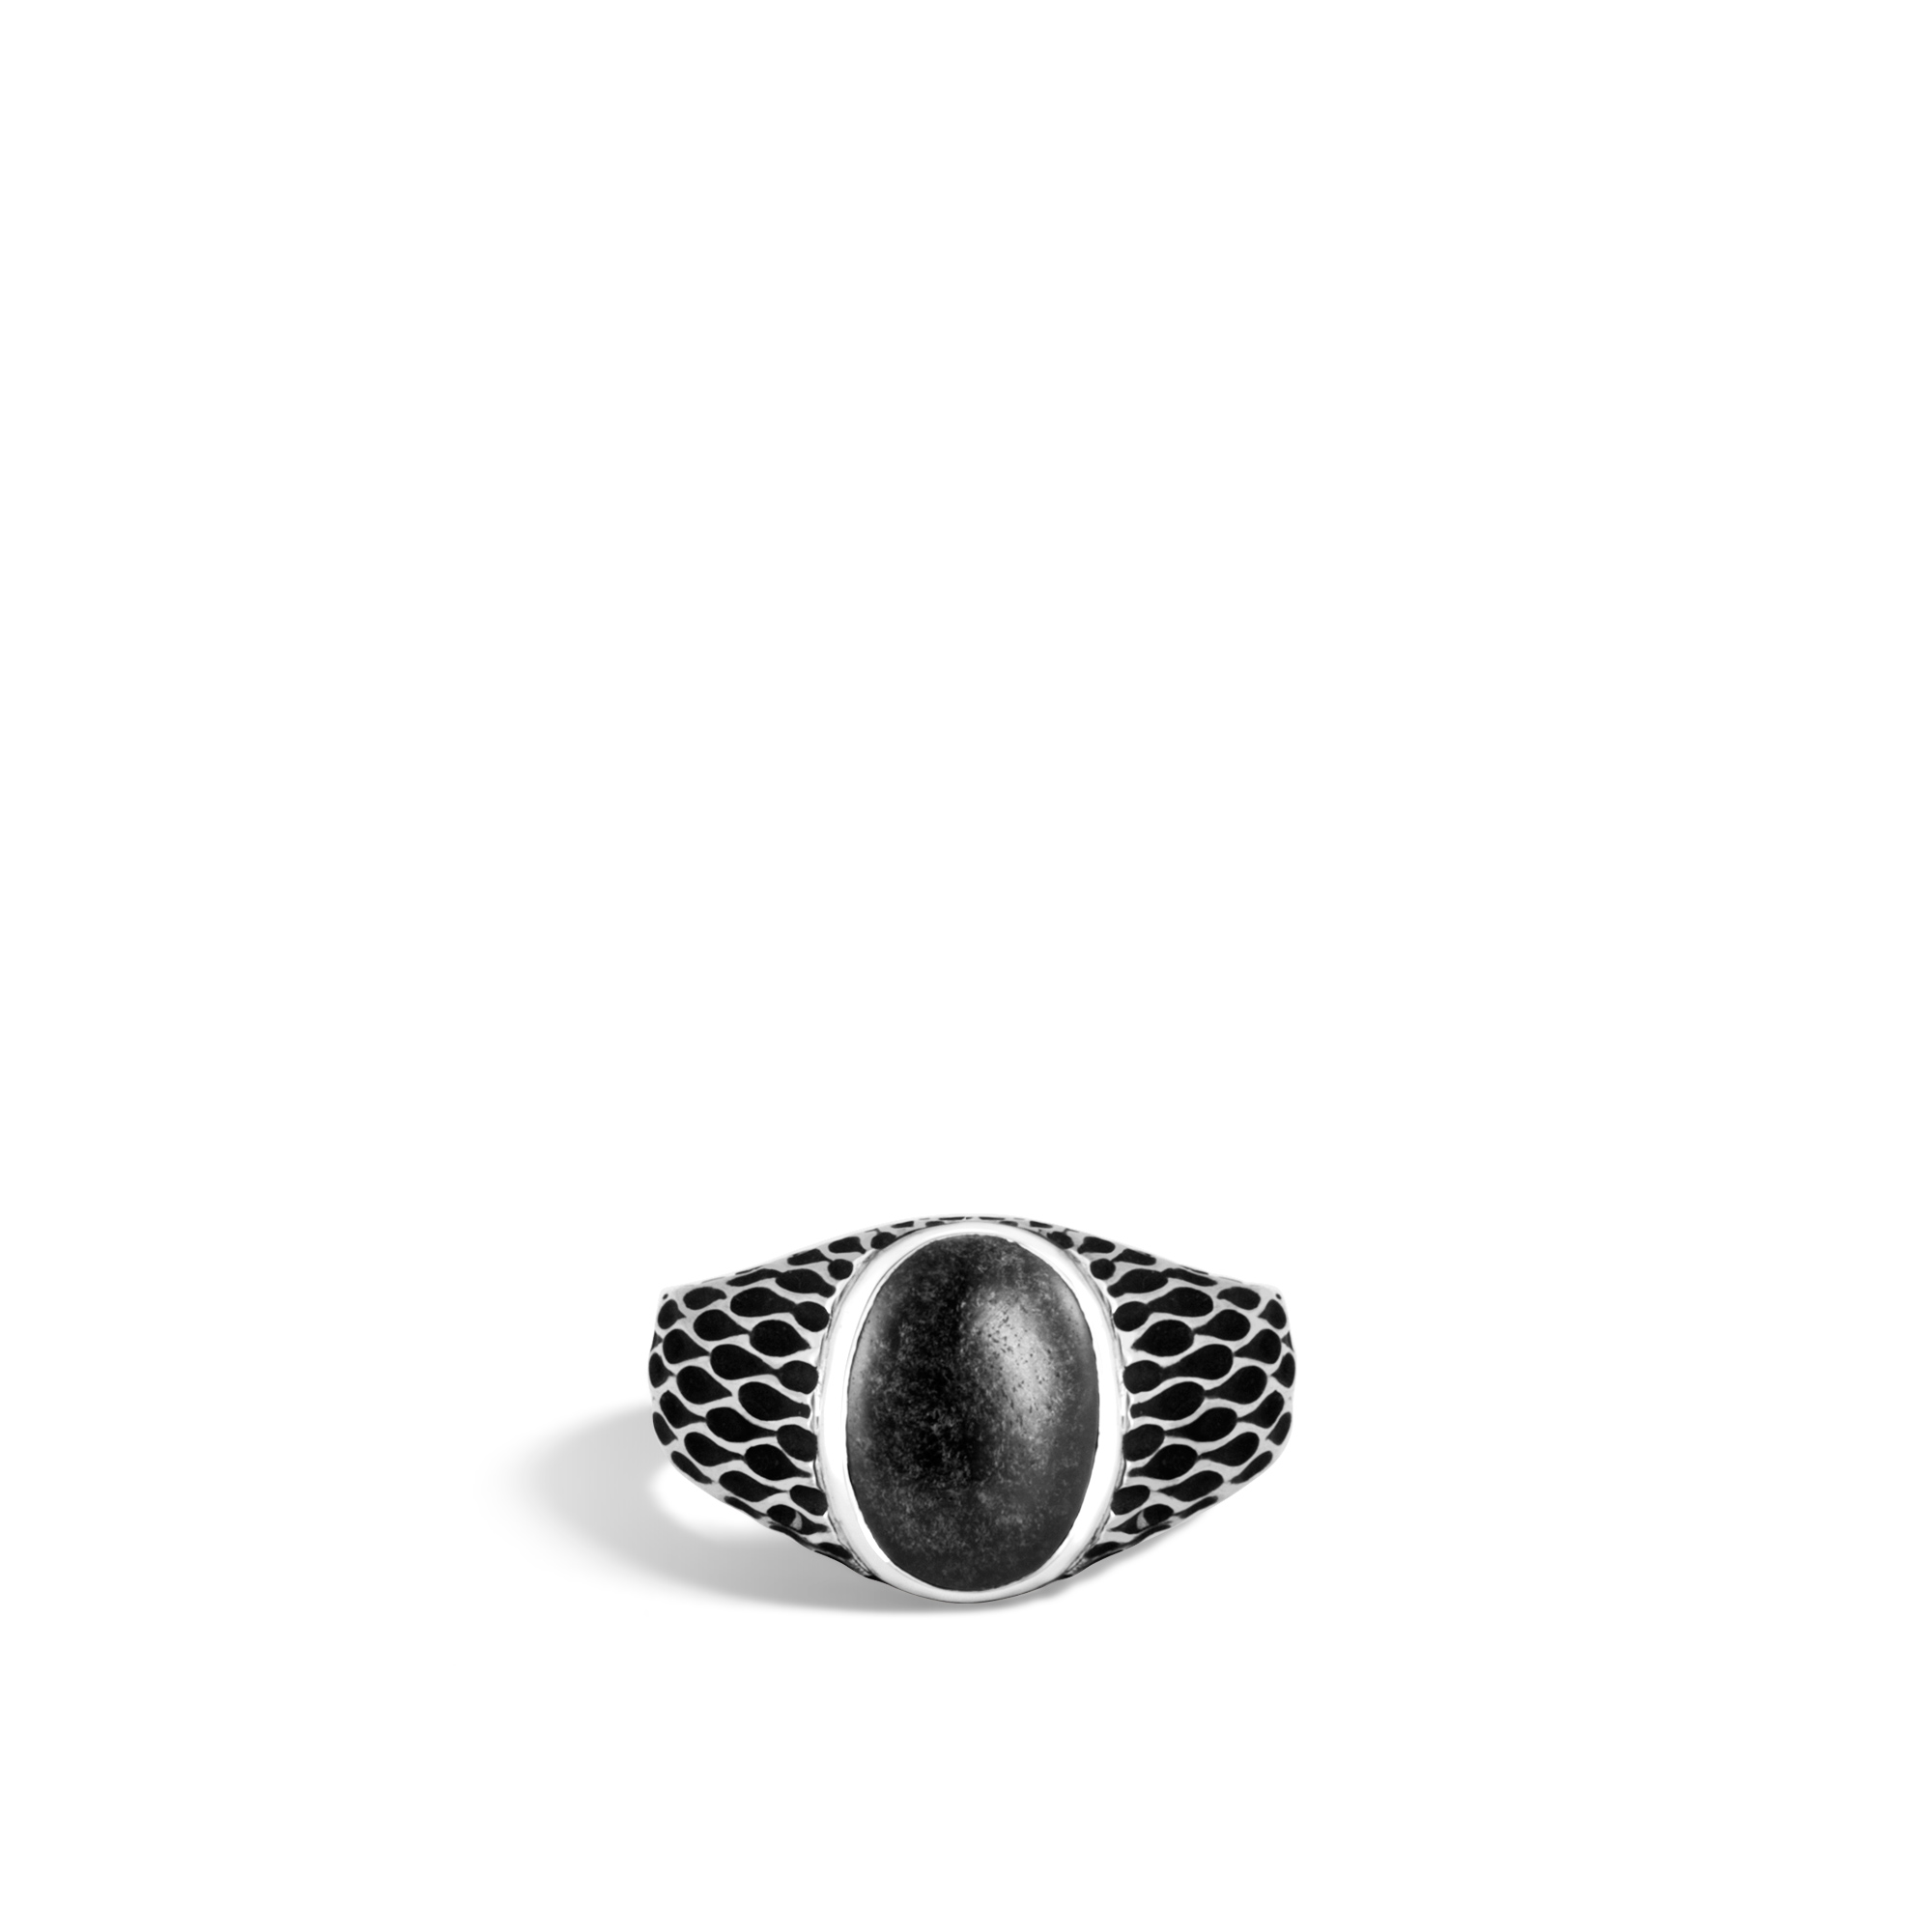 Legends Naga Oval Signet Ring in Silver with Gemstone, Silver Sheen Obsidian, large